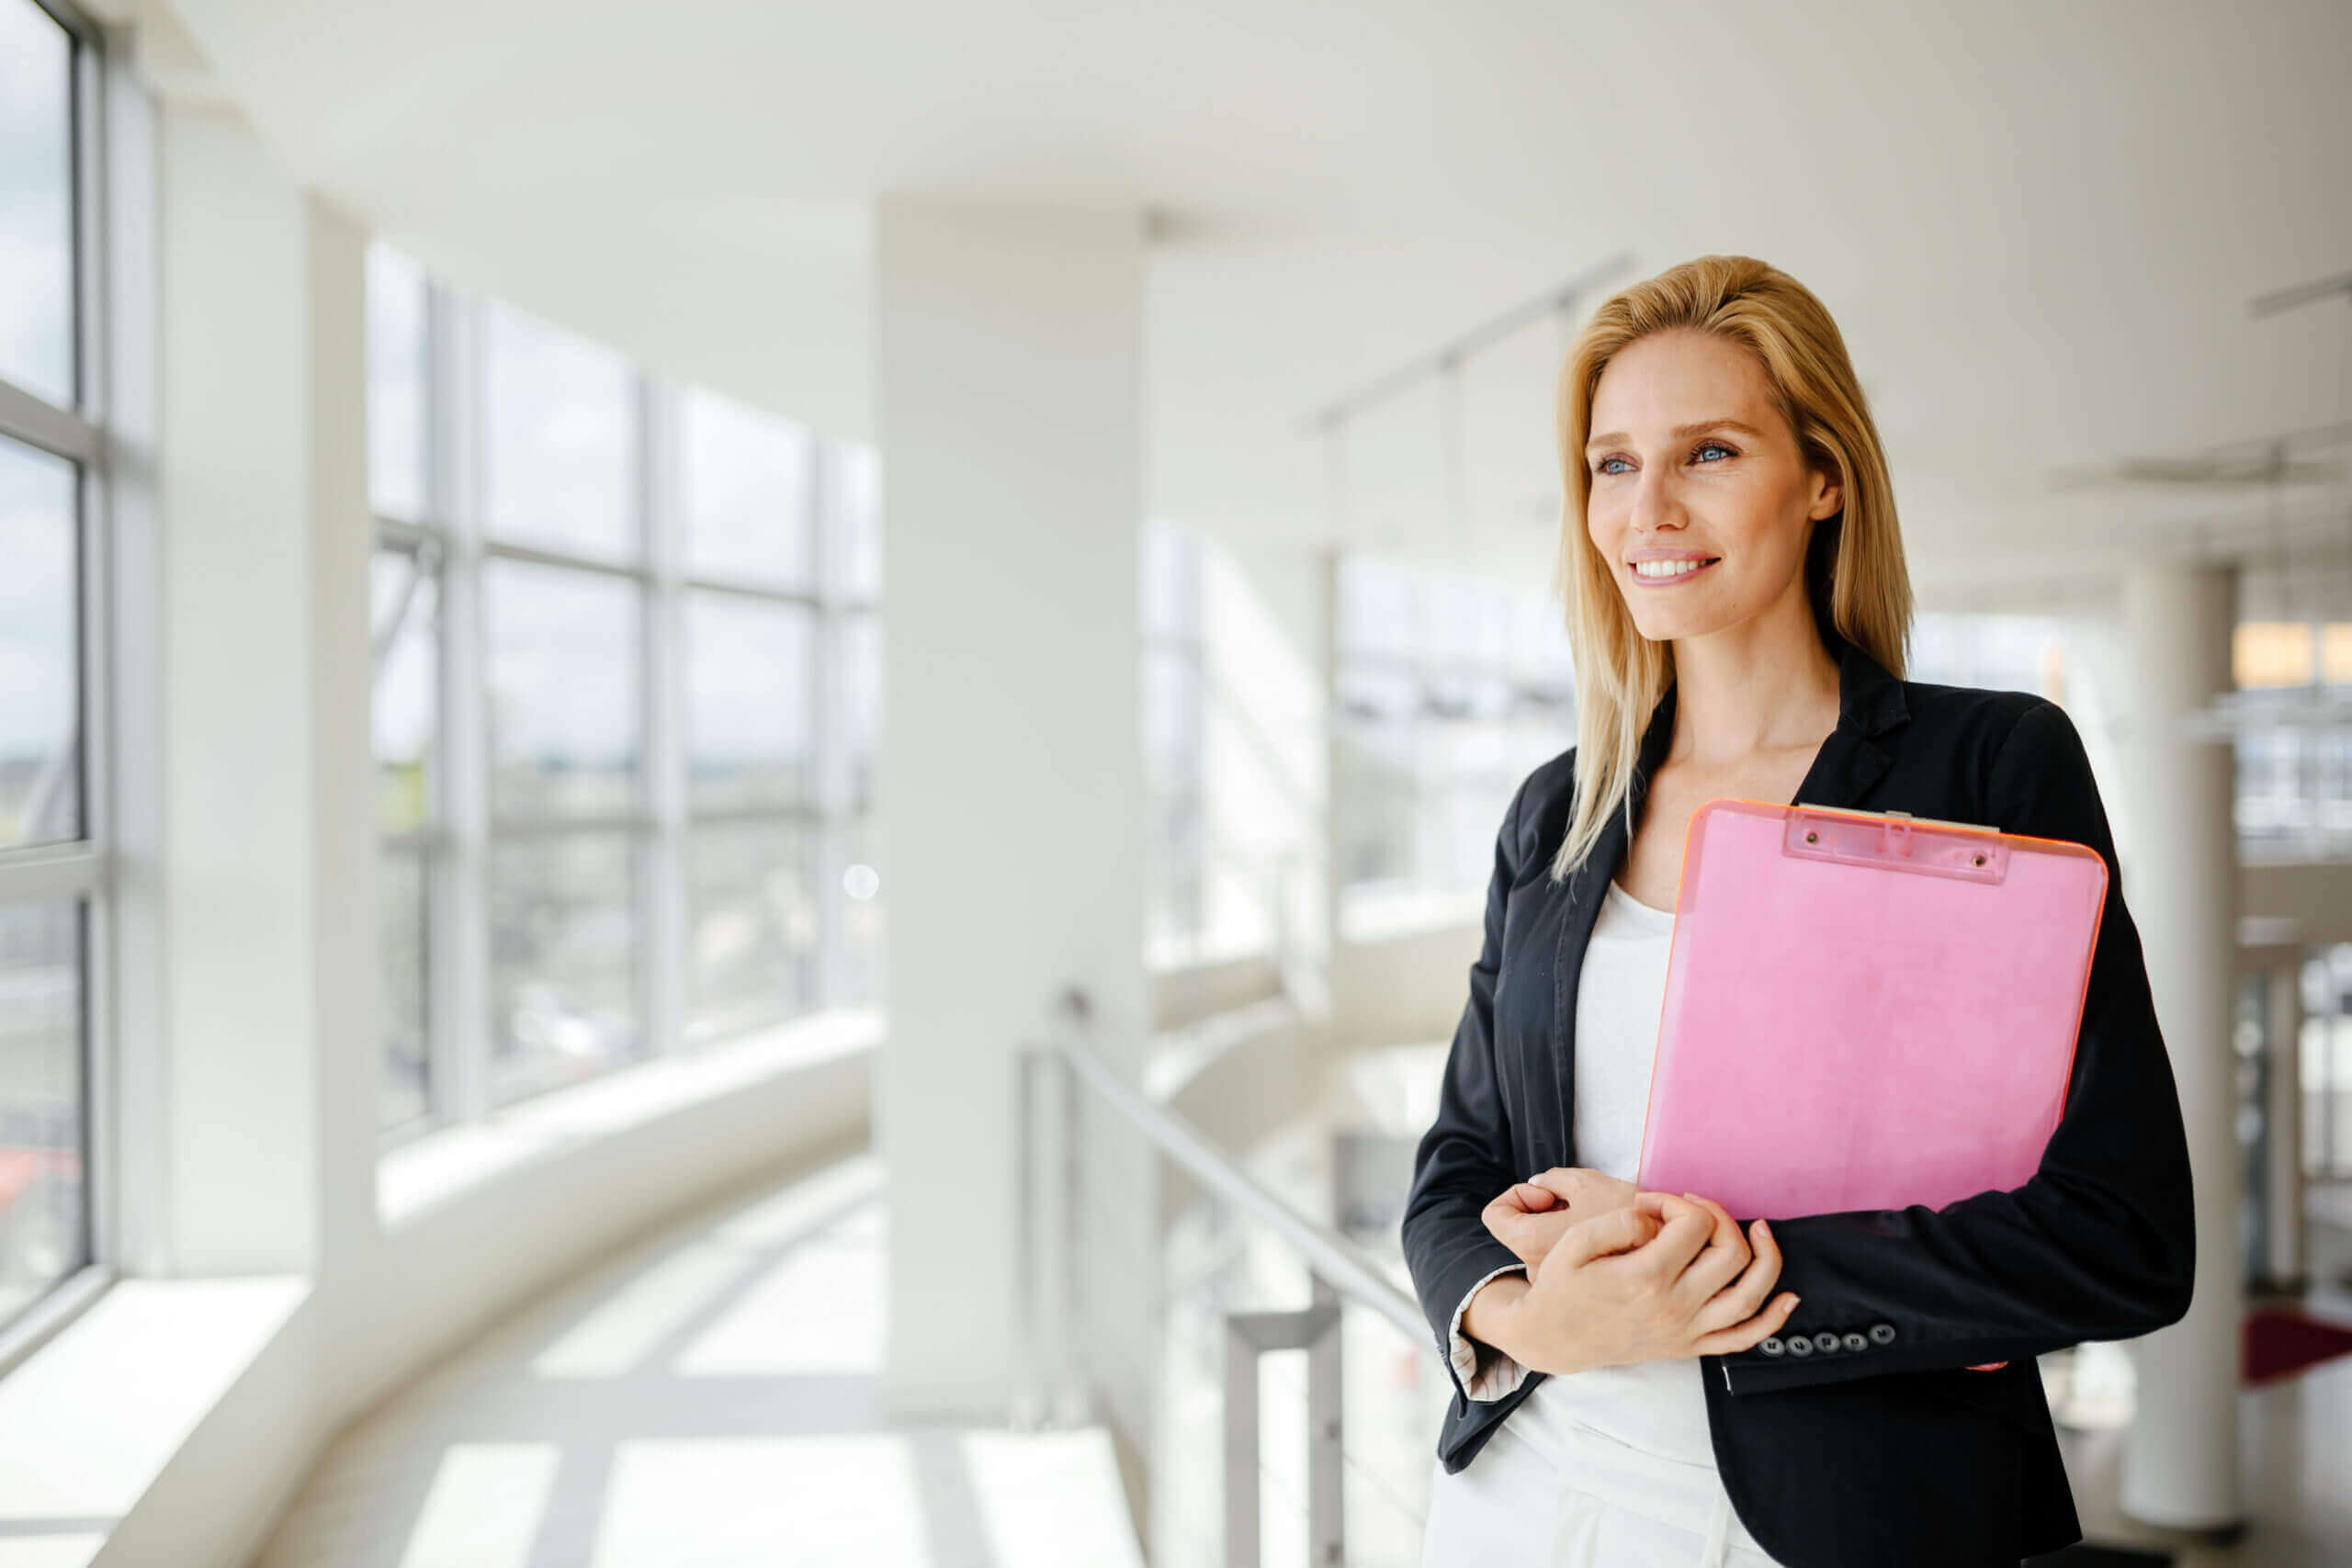 Resume services - You are an authority